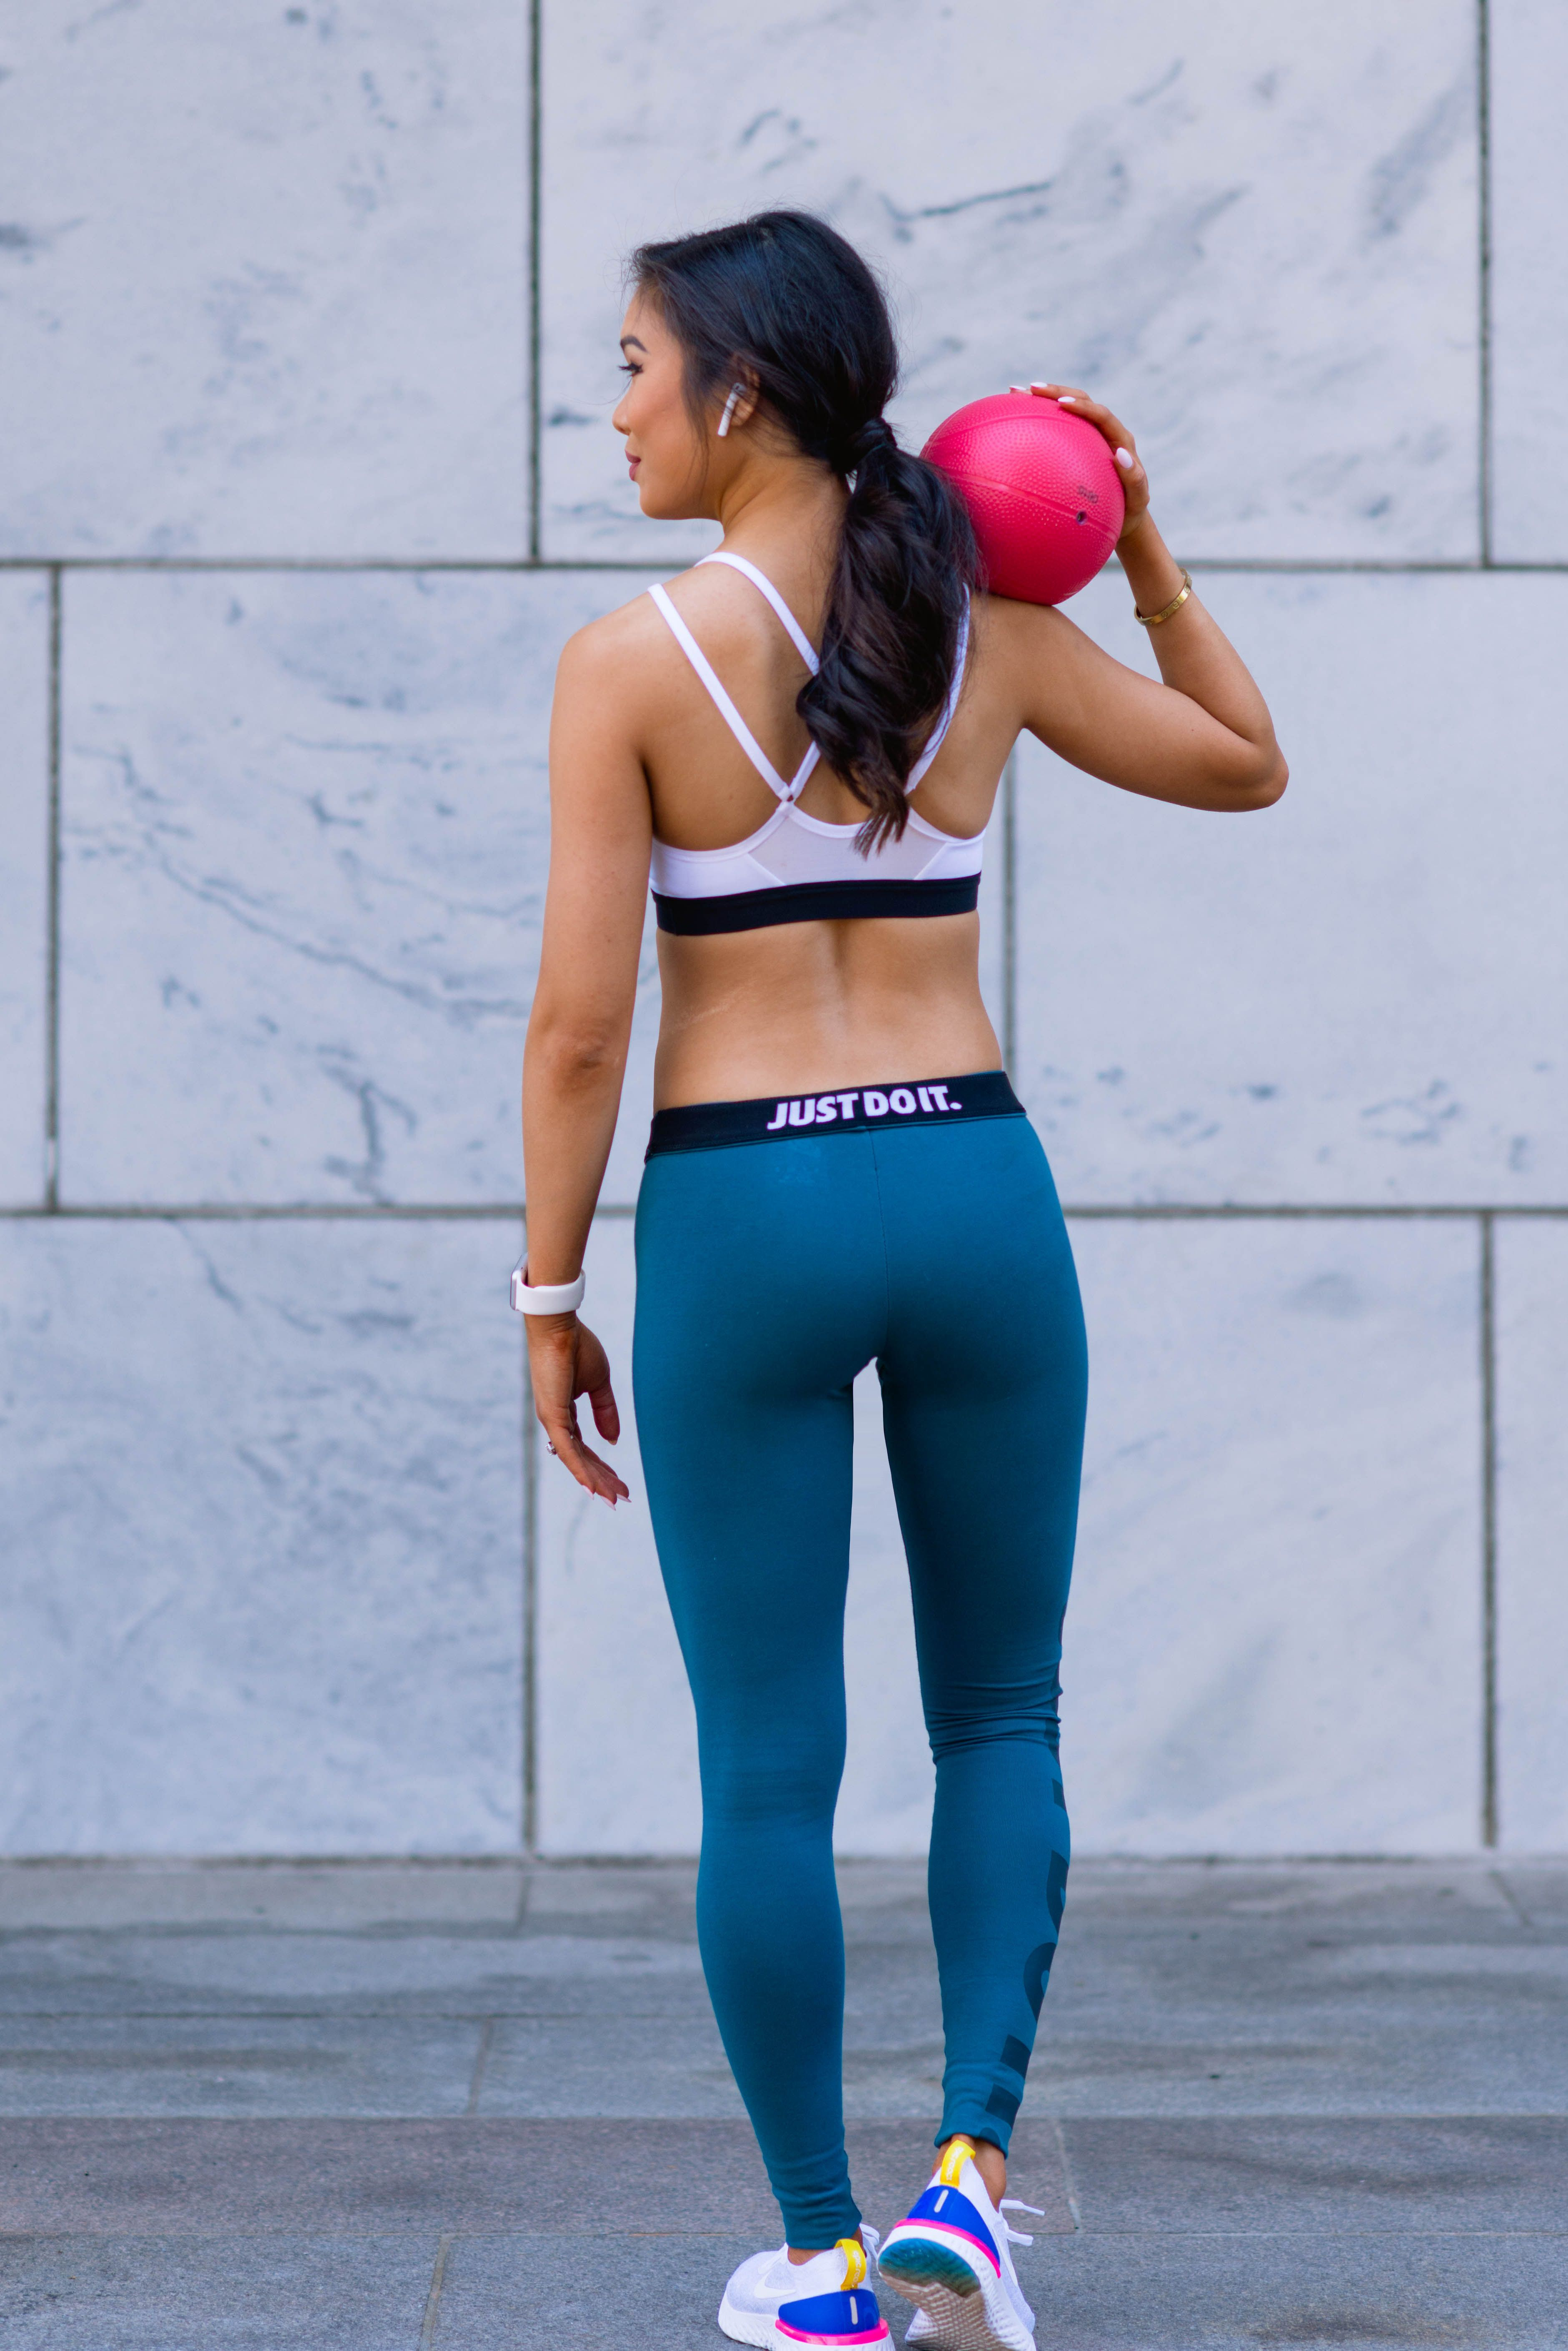 b3a98d802ca3f Nike athletic apparel featuring Indy Sports Bra, Leg-A-See Leggings and  Epic React Sneakers